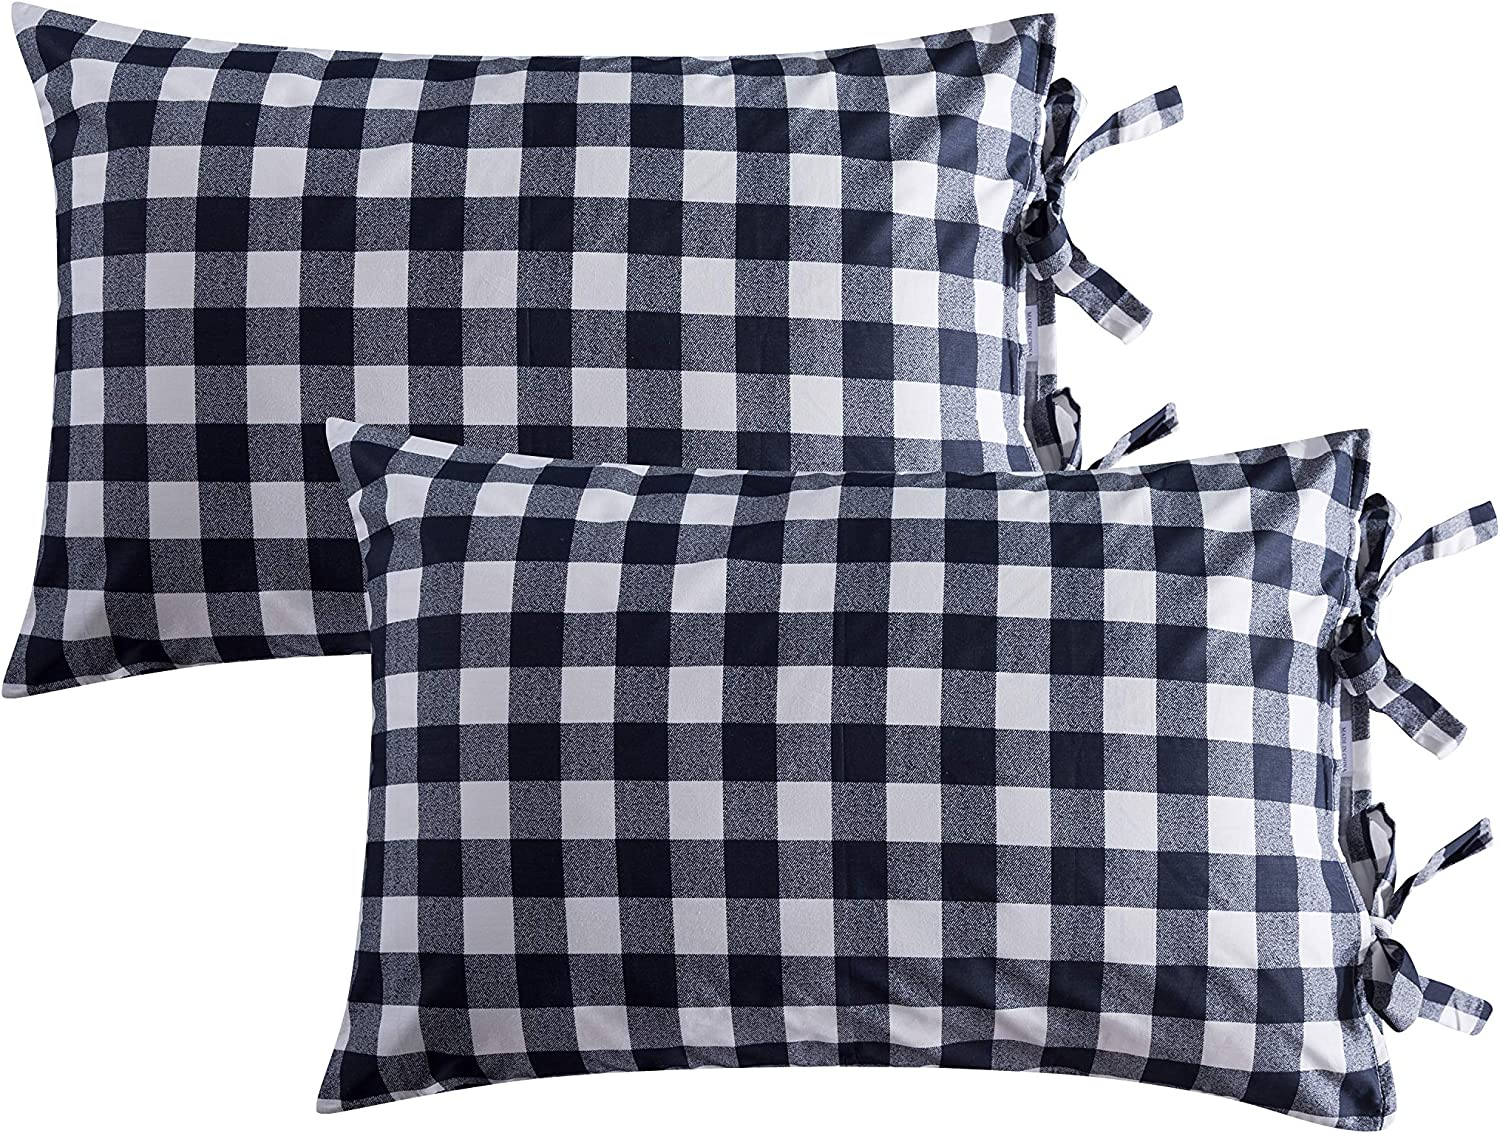 Amazon Com Fadfay Pillowcase 20x29 Inch Premium 100 Cotton Black And White Pillow Cover Decorative Pillow Protectors Standard Size 2 Pack Twin Full Queen Bed Duvet Cover Sold Separately Home Kitchen